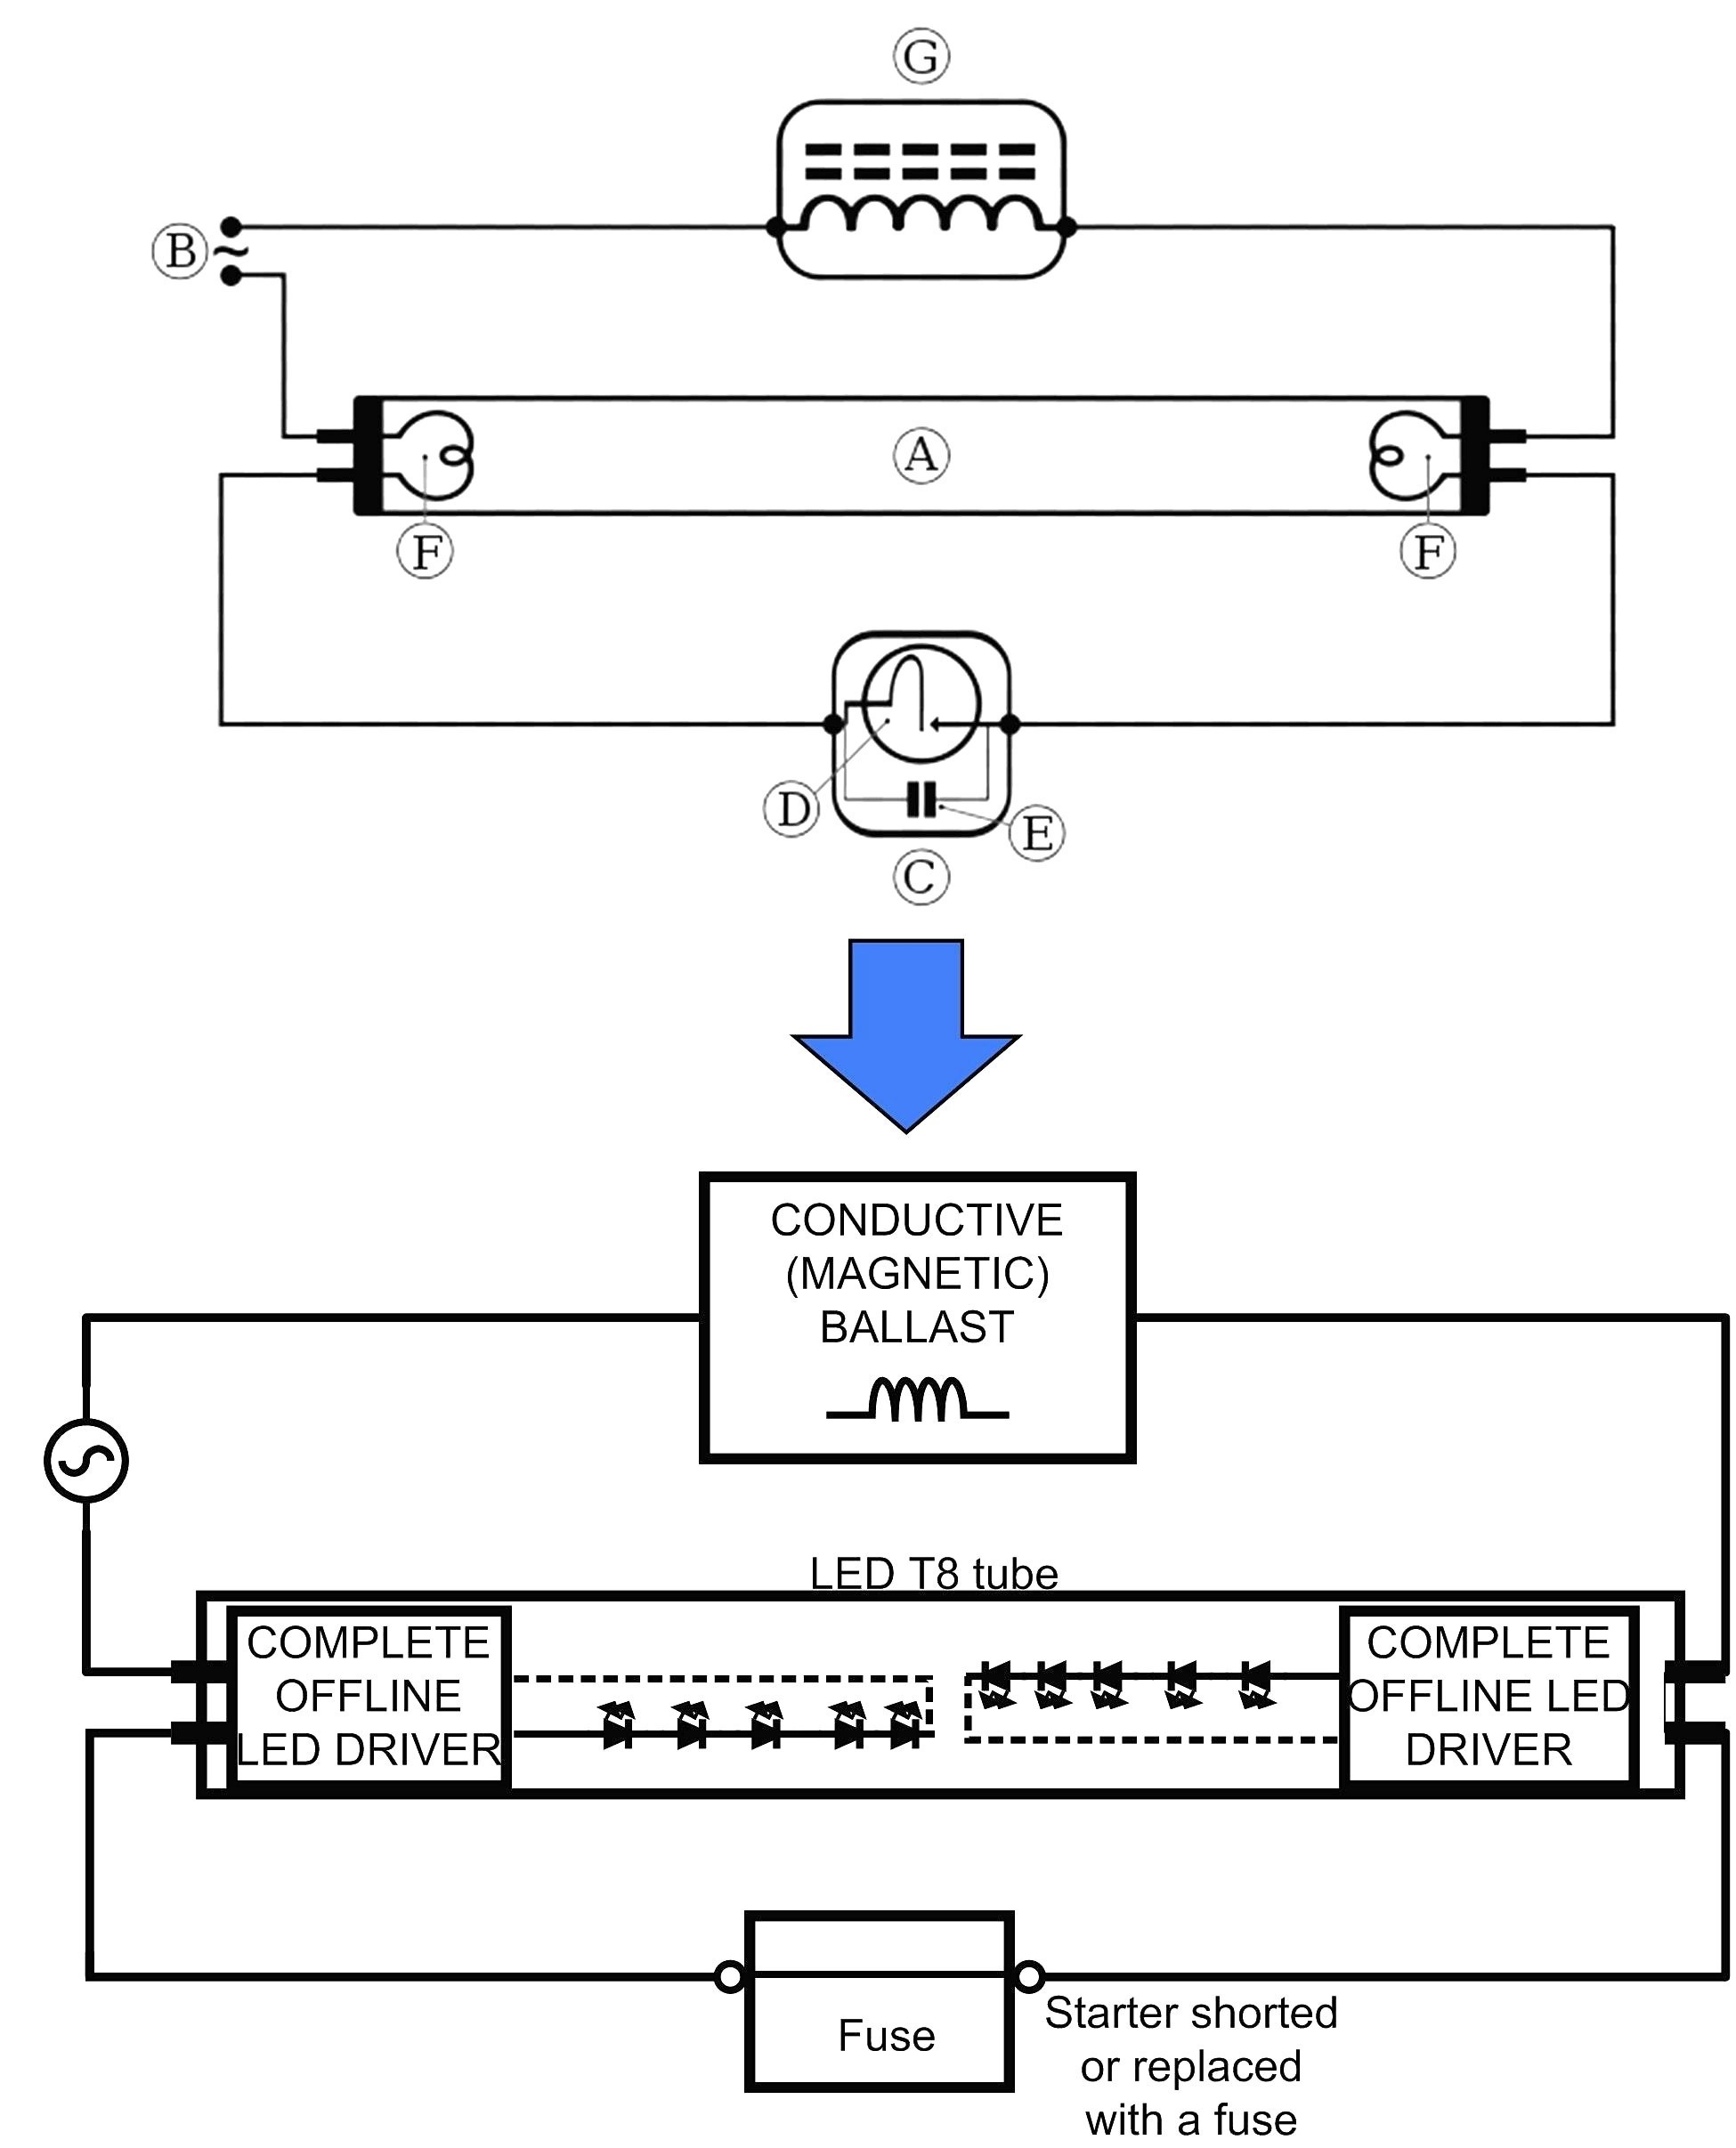 Led Circuit Diagram | Wiring Diagram For Led Fluorescent Light Wiring Diagram